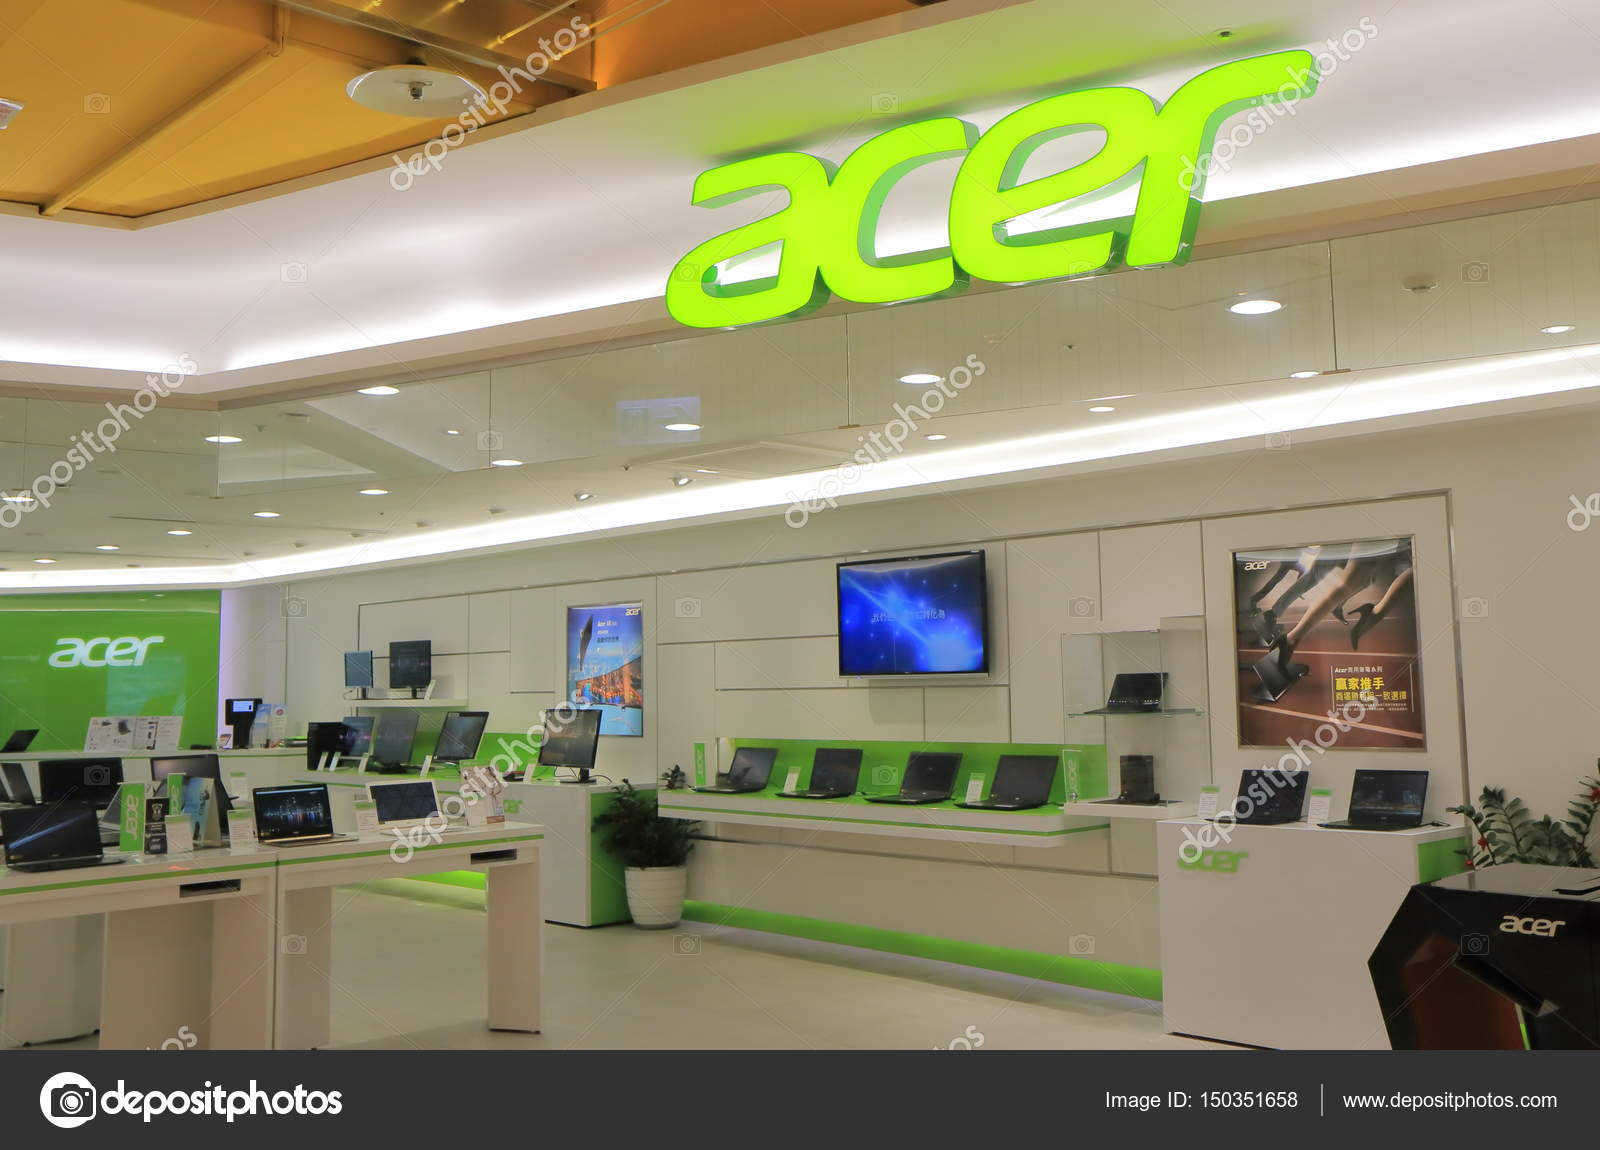 Images: acer computer | Acer computer shop – Stock Editorial ...